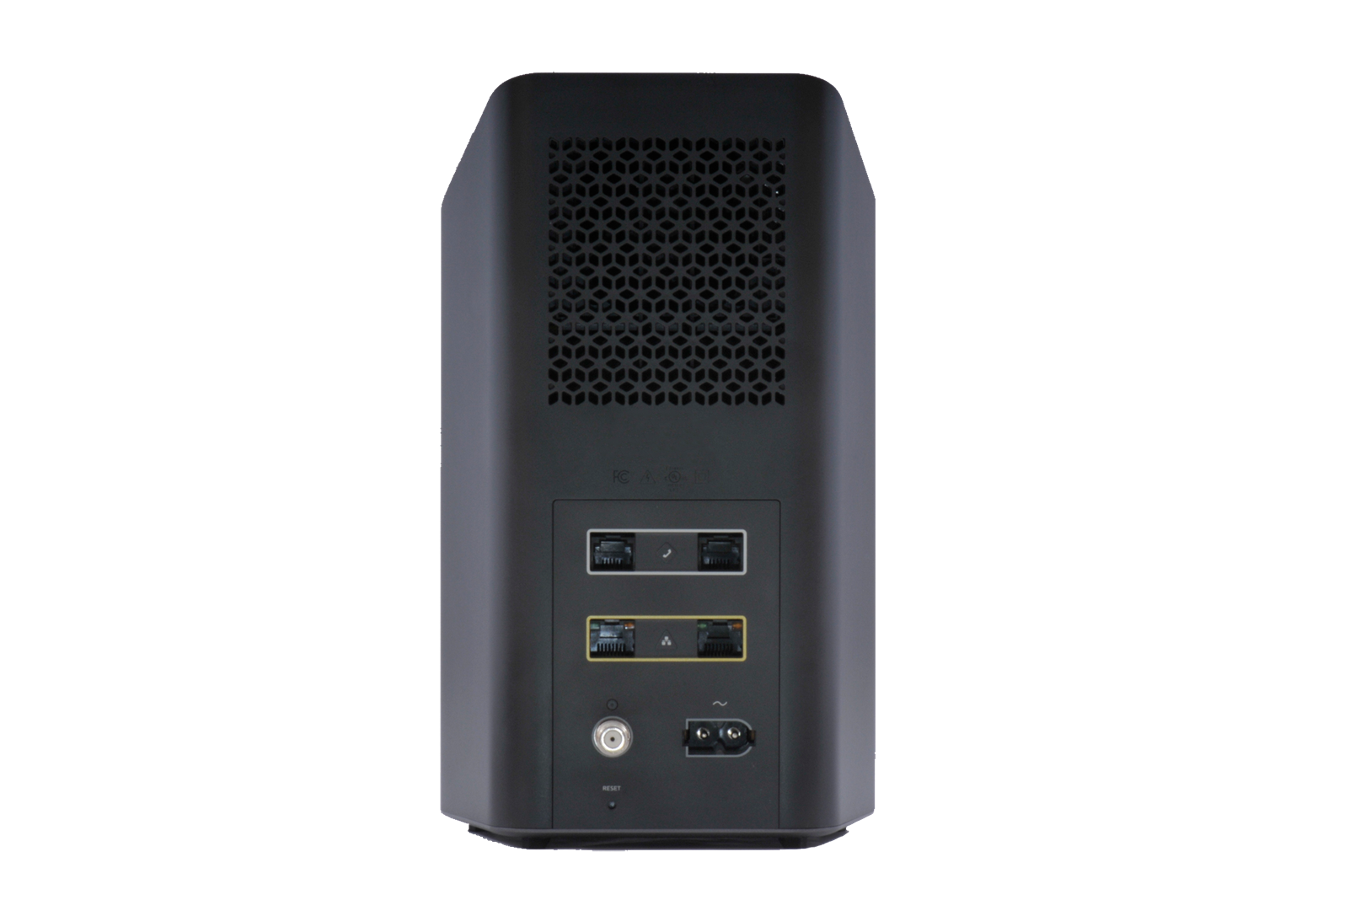 Hardware Information: BlueCurve Gateway